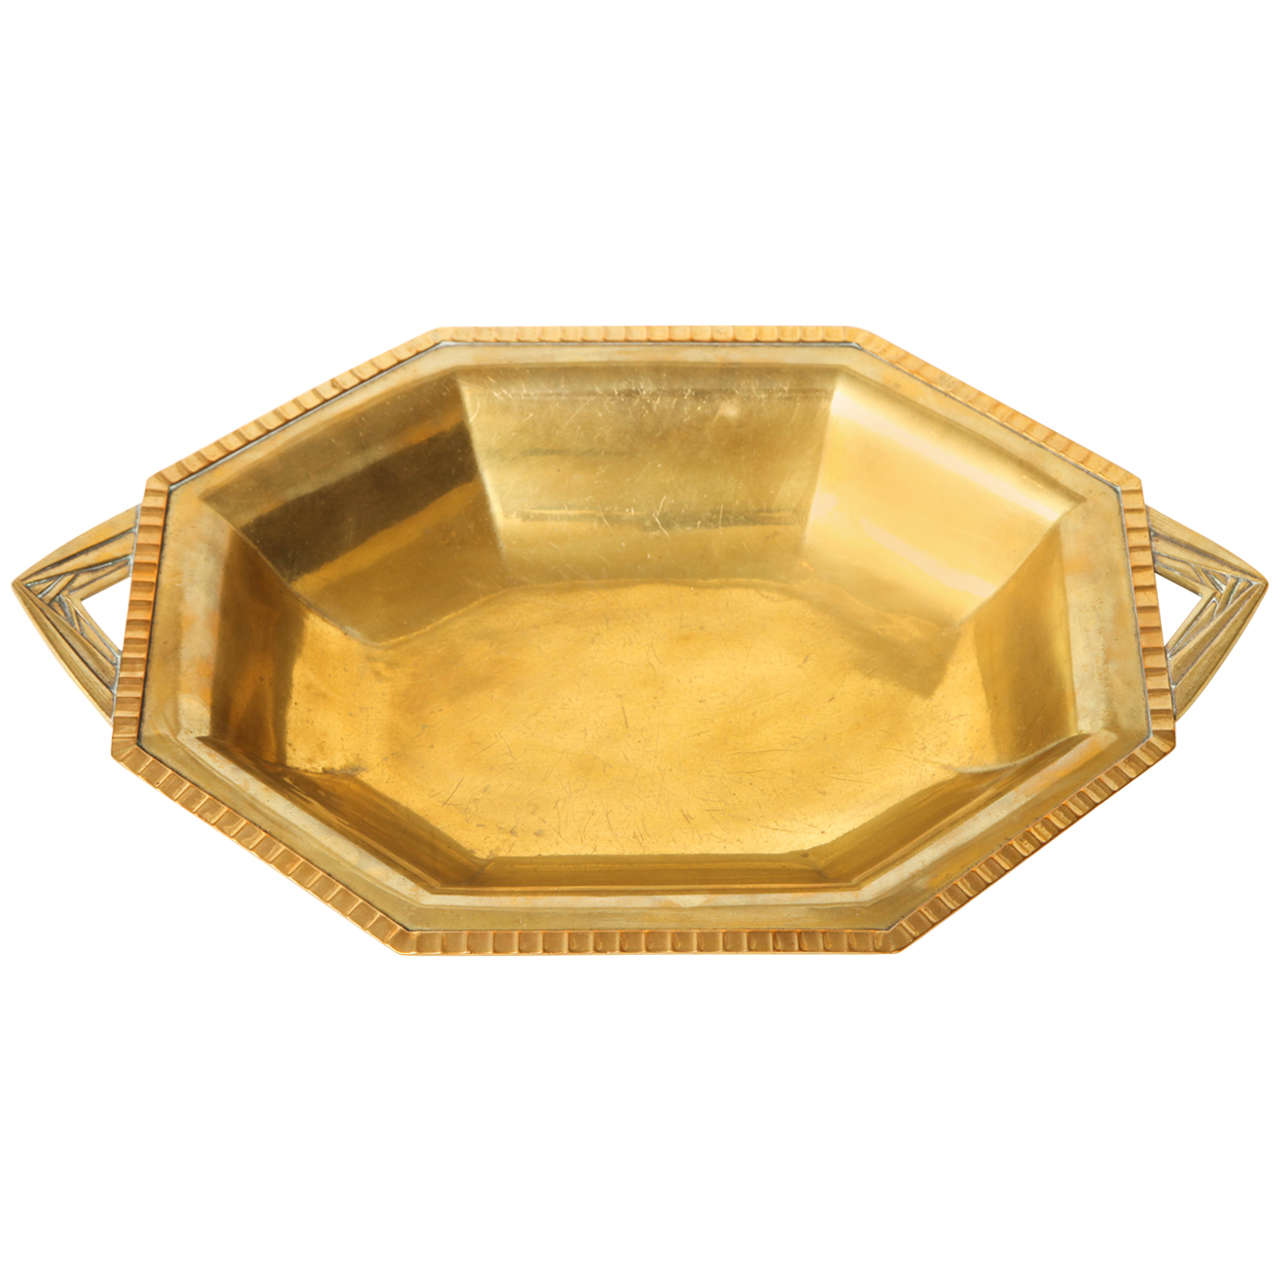 French Art Deco Brass Centerpiece or Fruit Bowl by RB at 1stdibs